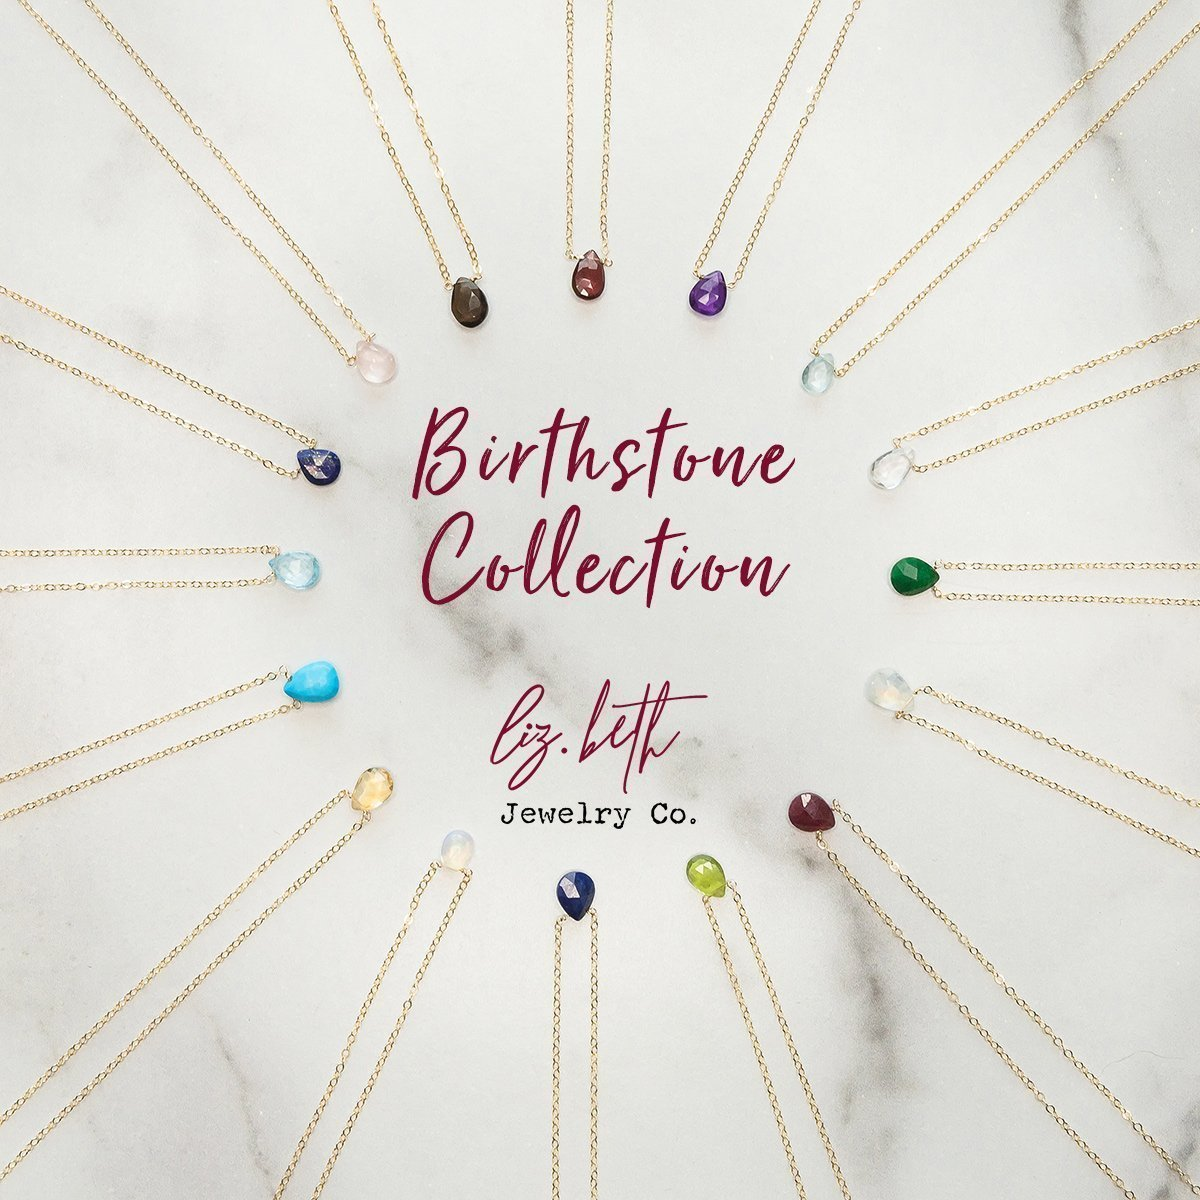 October Opal Birthstone Necklace Liz.Beth Jewelry Co.